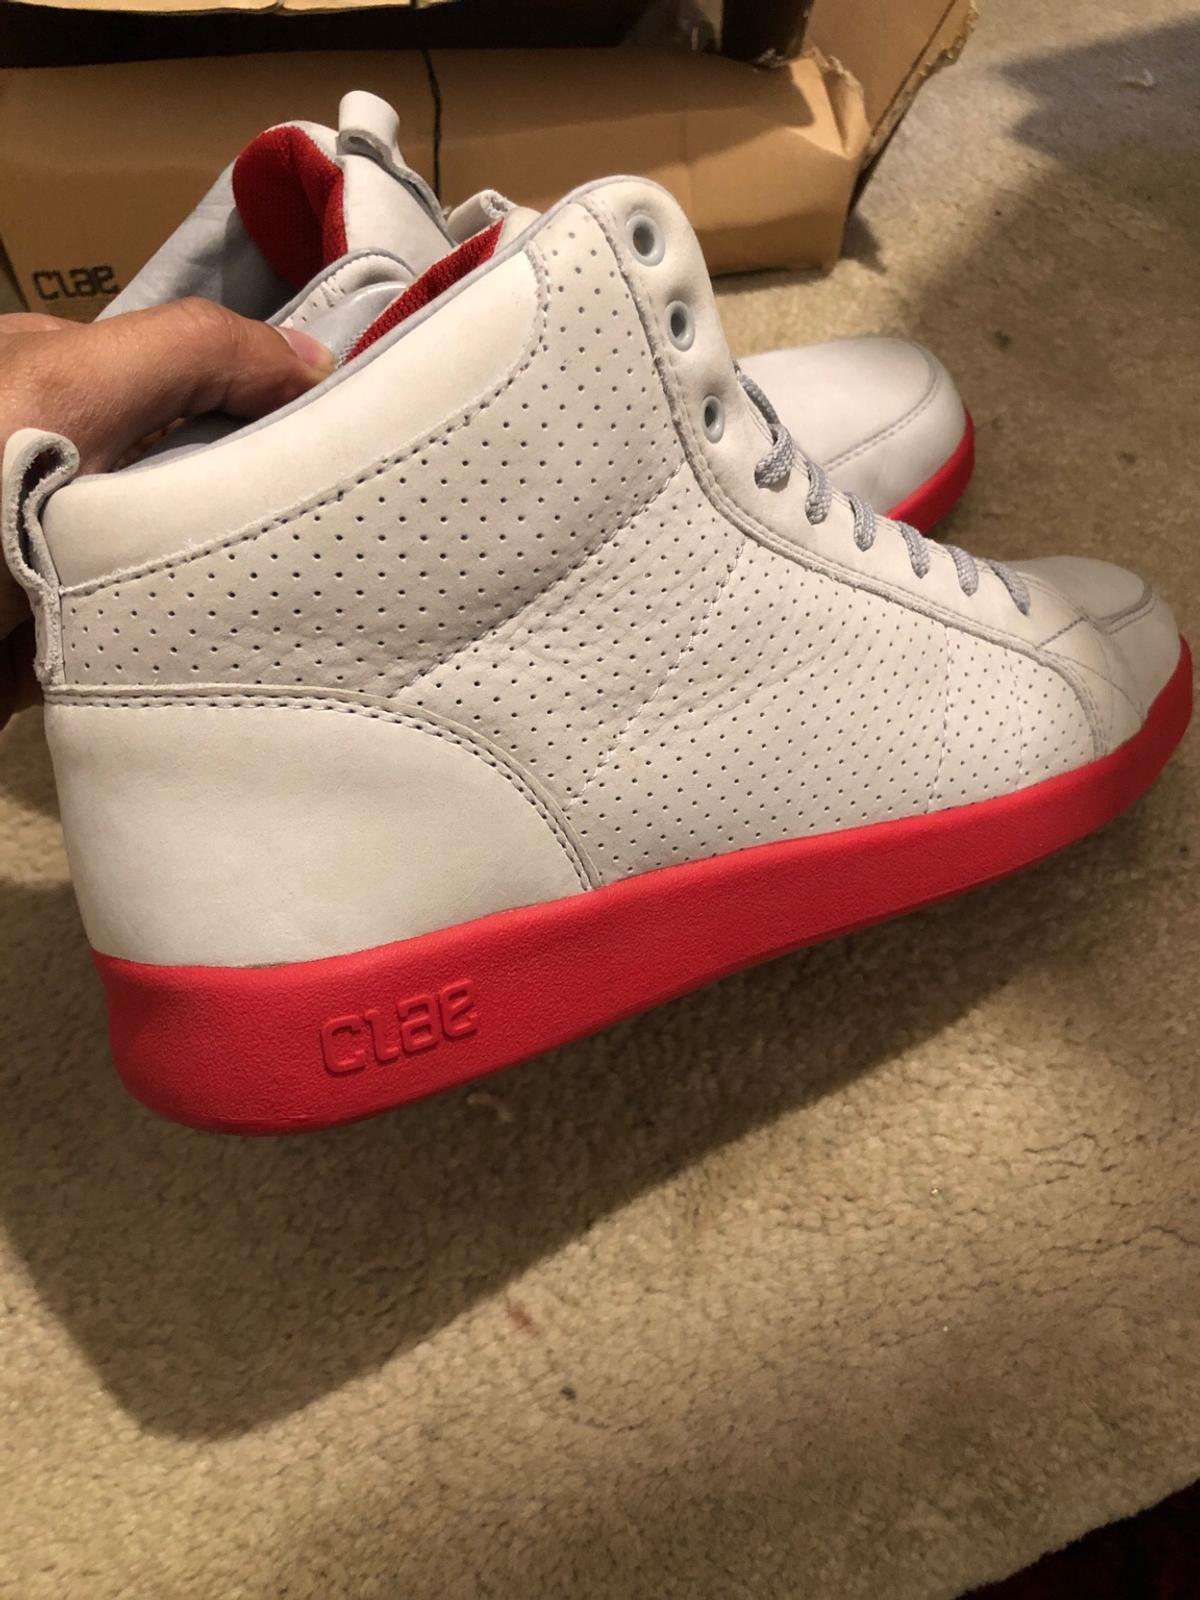 Clae yeezy colour way hightop designer shoes  Worn, condition 8/10, nothing very noticeable.